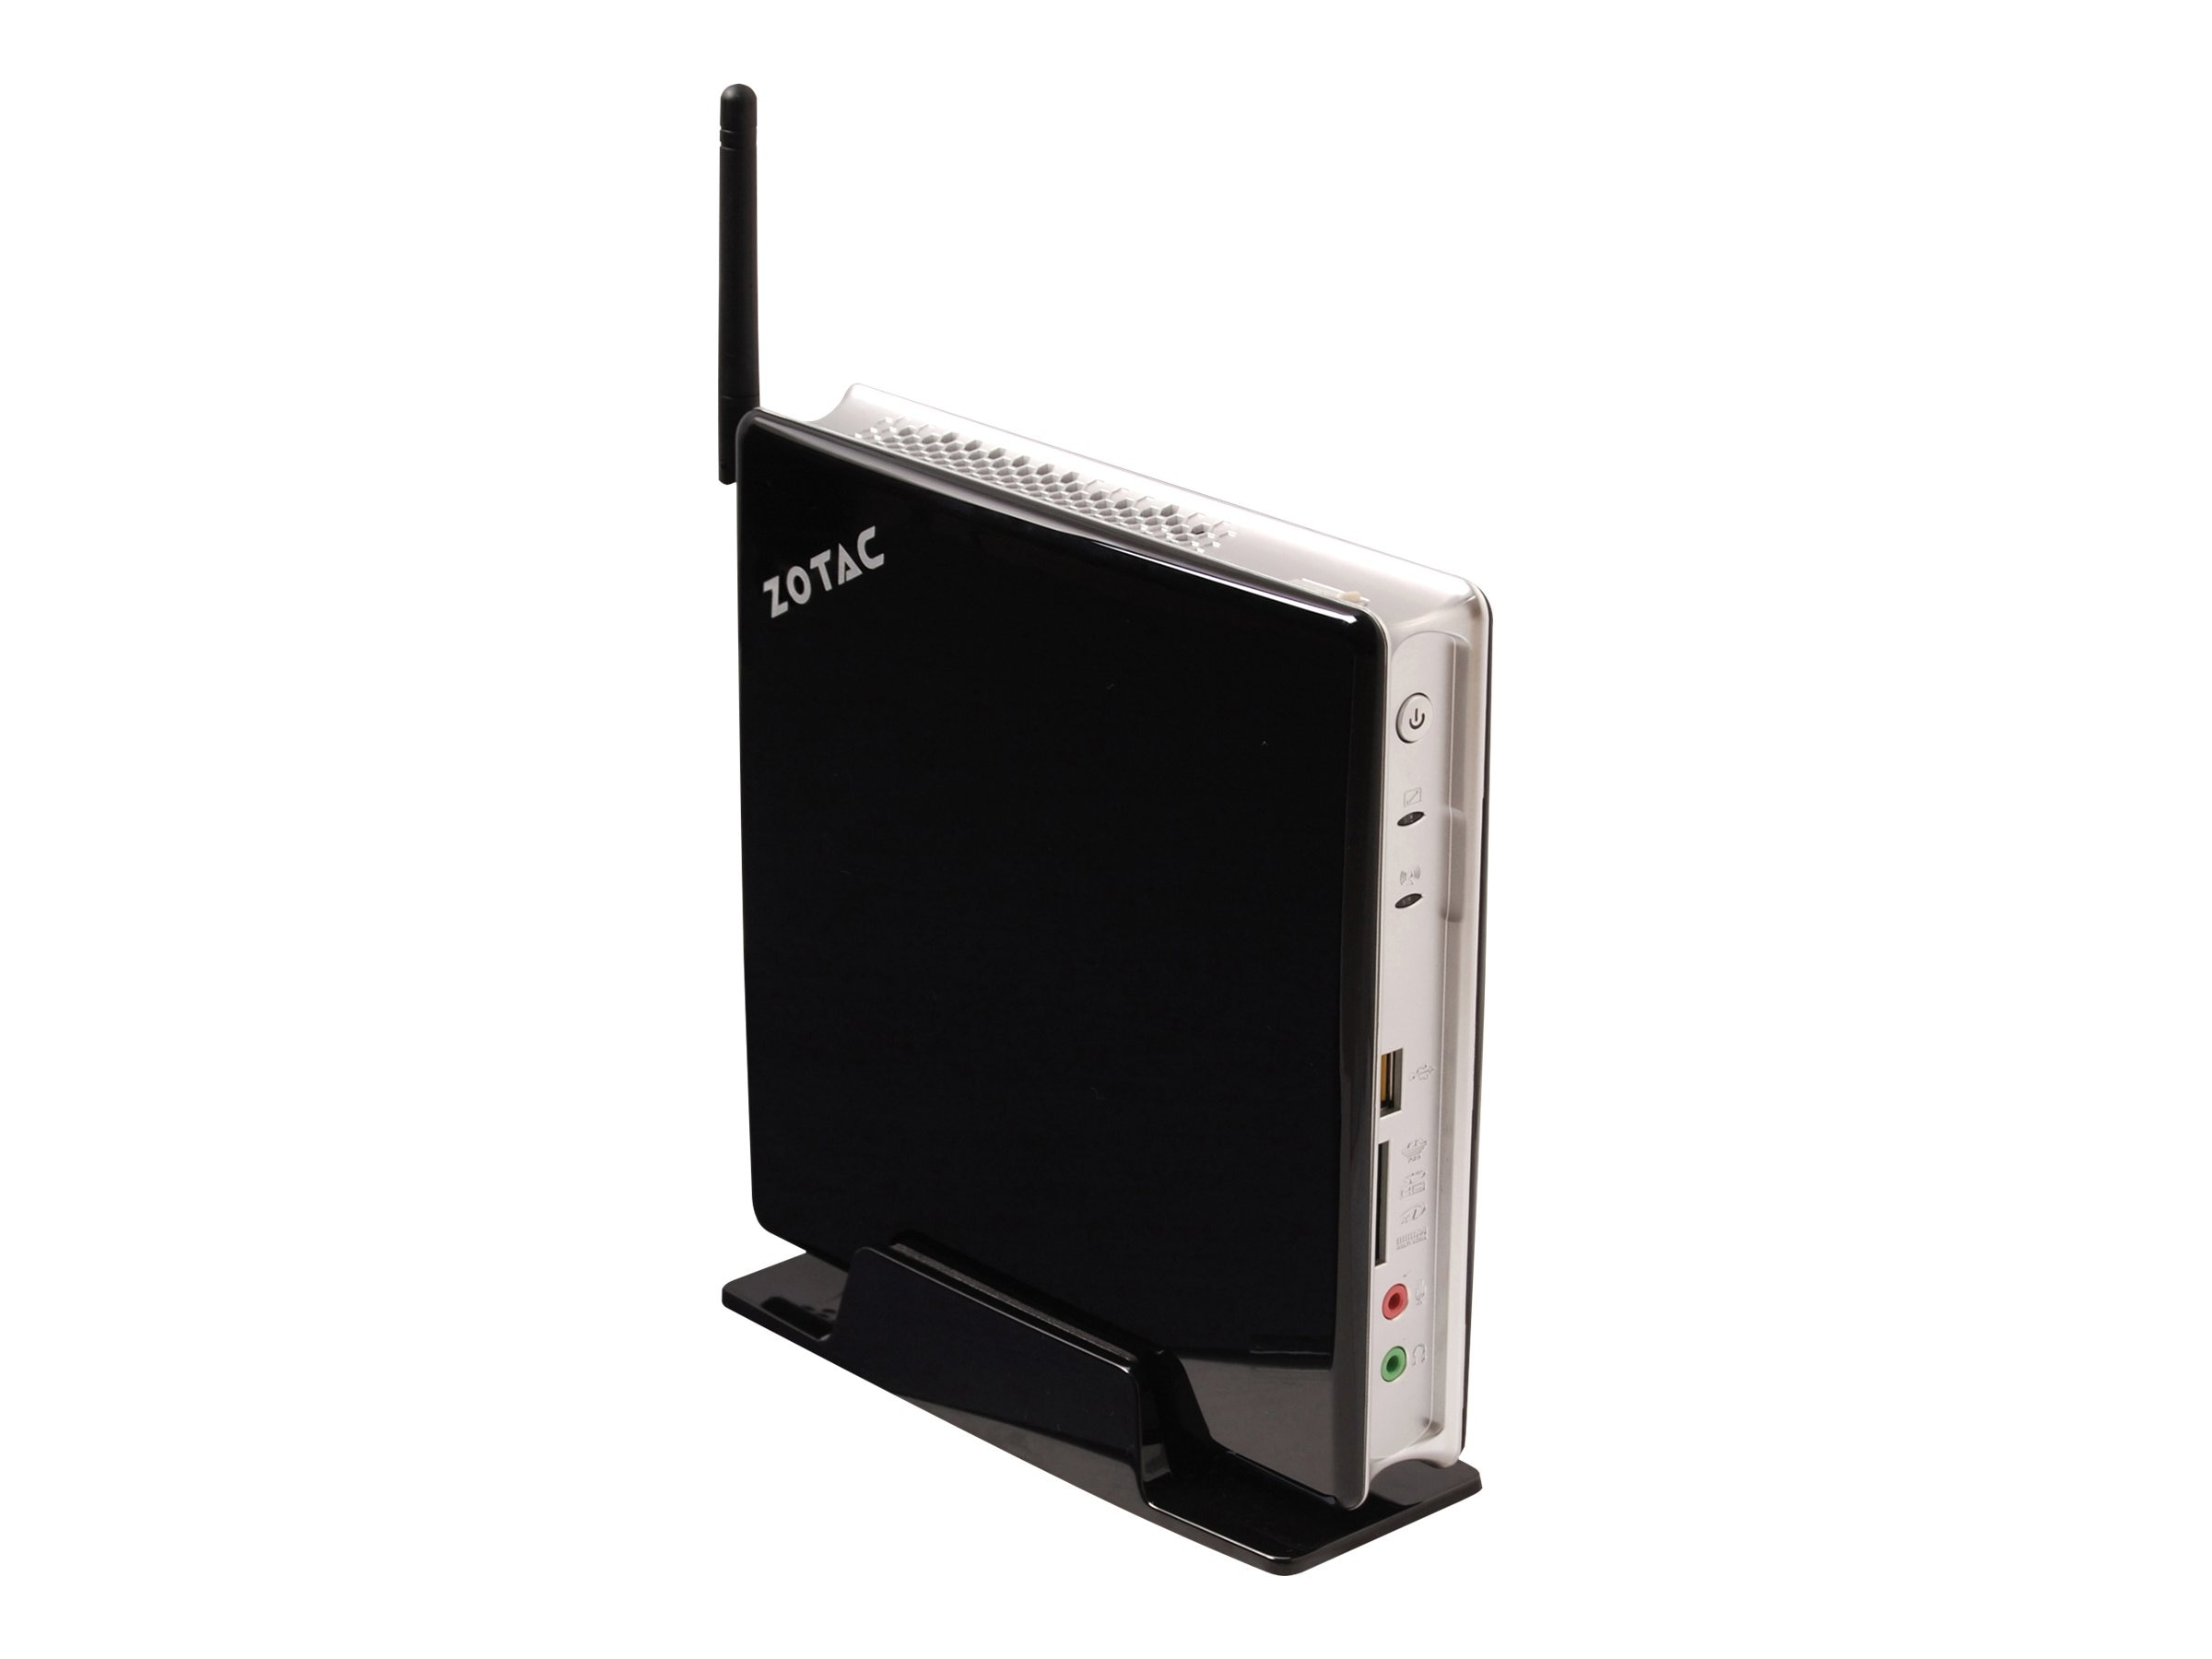 Zotac ZBox ID83 Mini PC Core i3-3120M 2.5GHz Max.16GB DDR3 GbE bgn HDMI No HDD, Memory, or OS, ZBOX-ID83-U